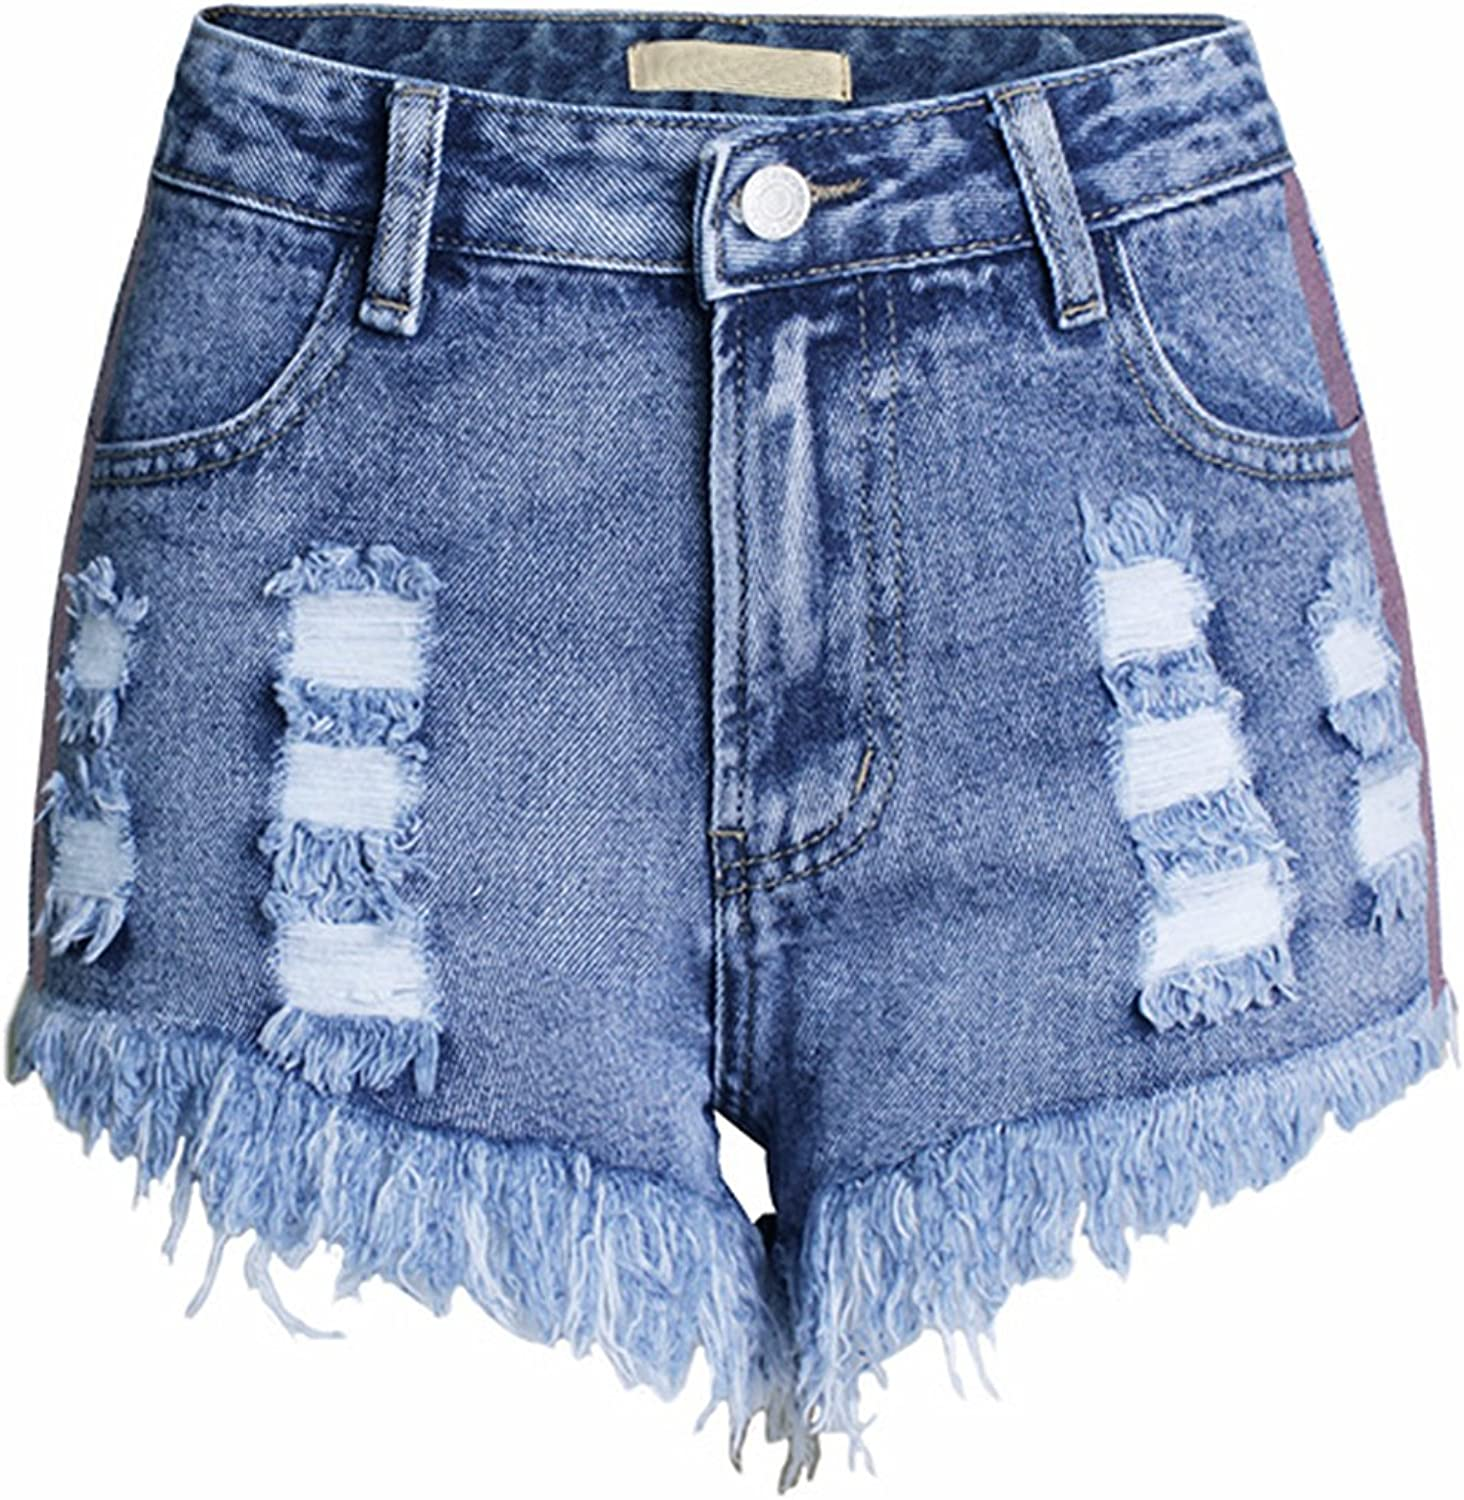 USOPHIA Womens Vintage Distressed Ripped Denim Jean Shorts With Pockets